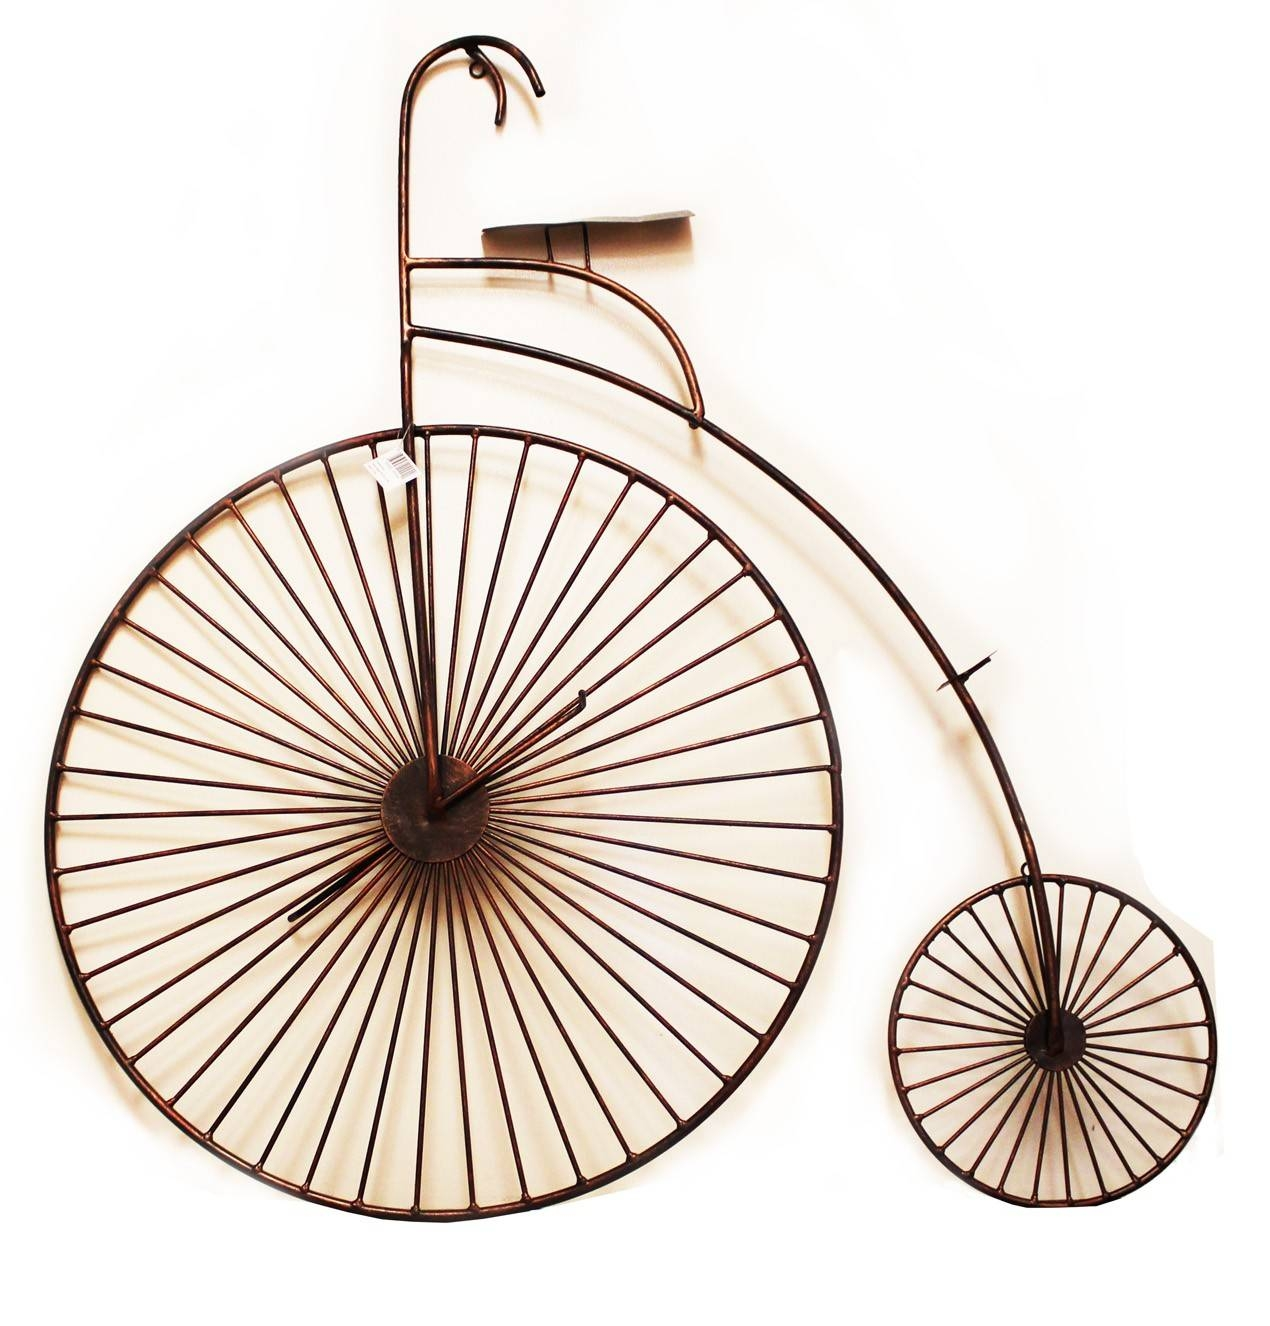 3D Copper Tone Bicycle Wall Art | Unique Metal Wall Art | Wall Decor With Regard To Current Metal Bicycle Wall Art (View 4 of 20)